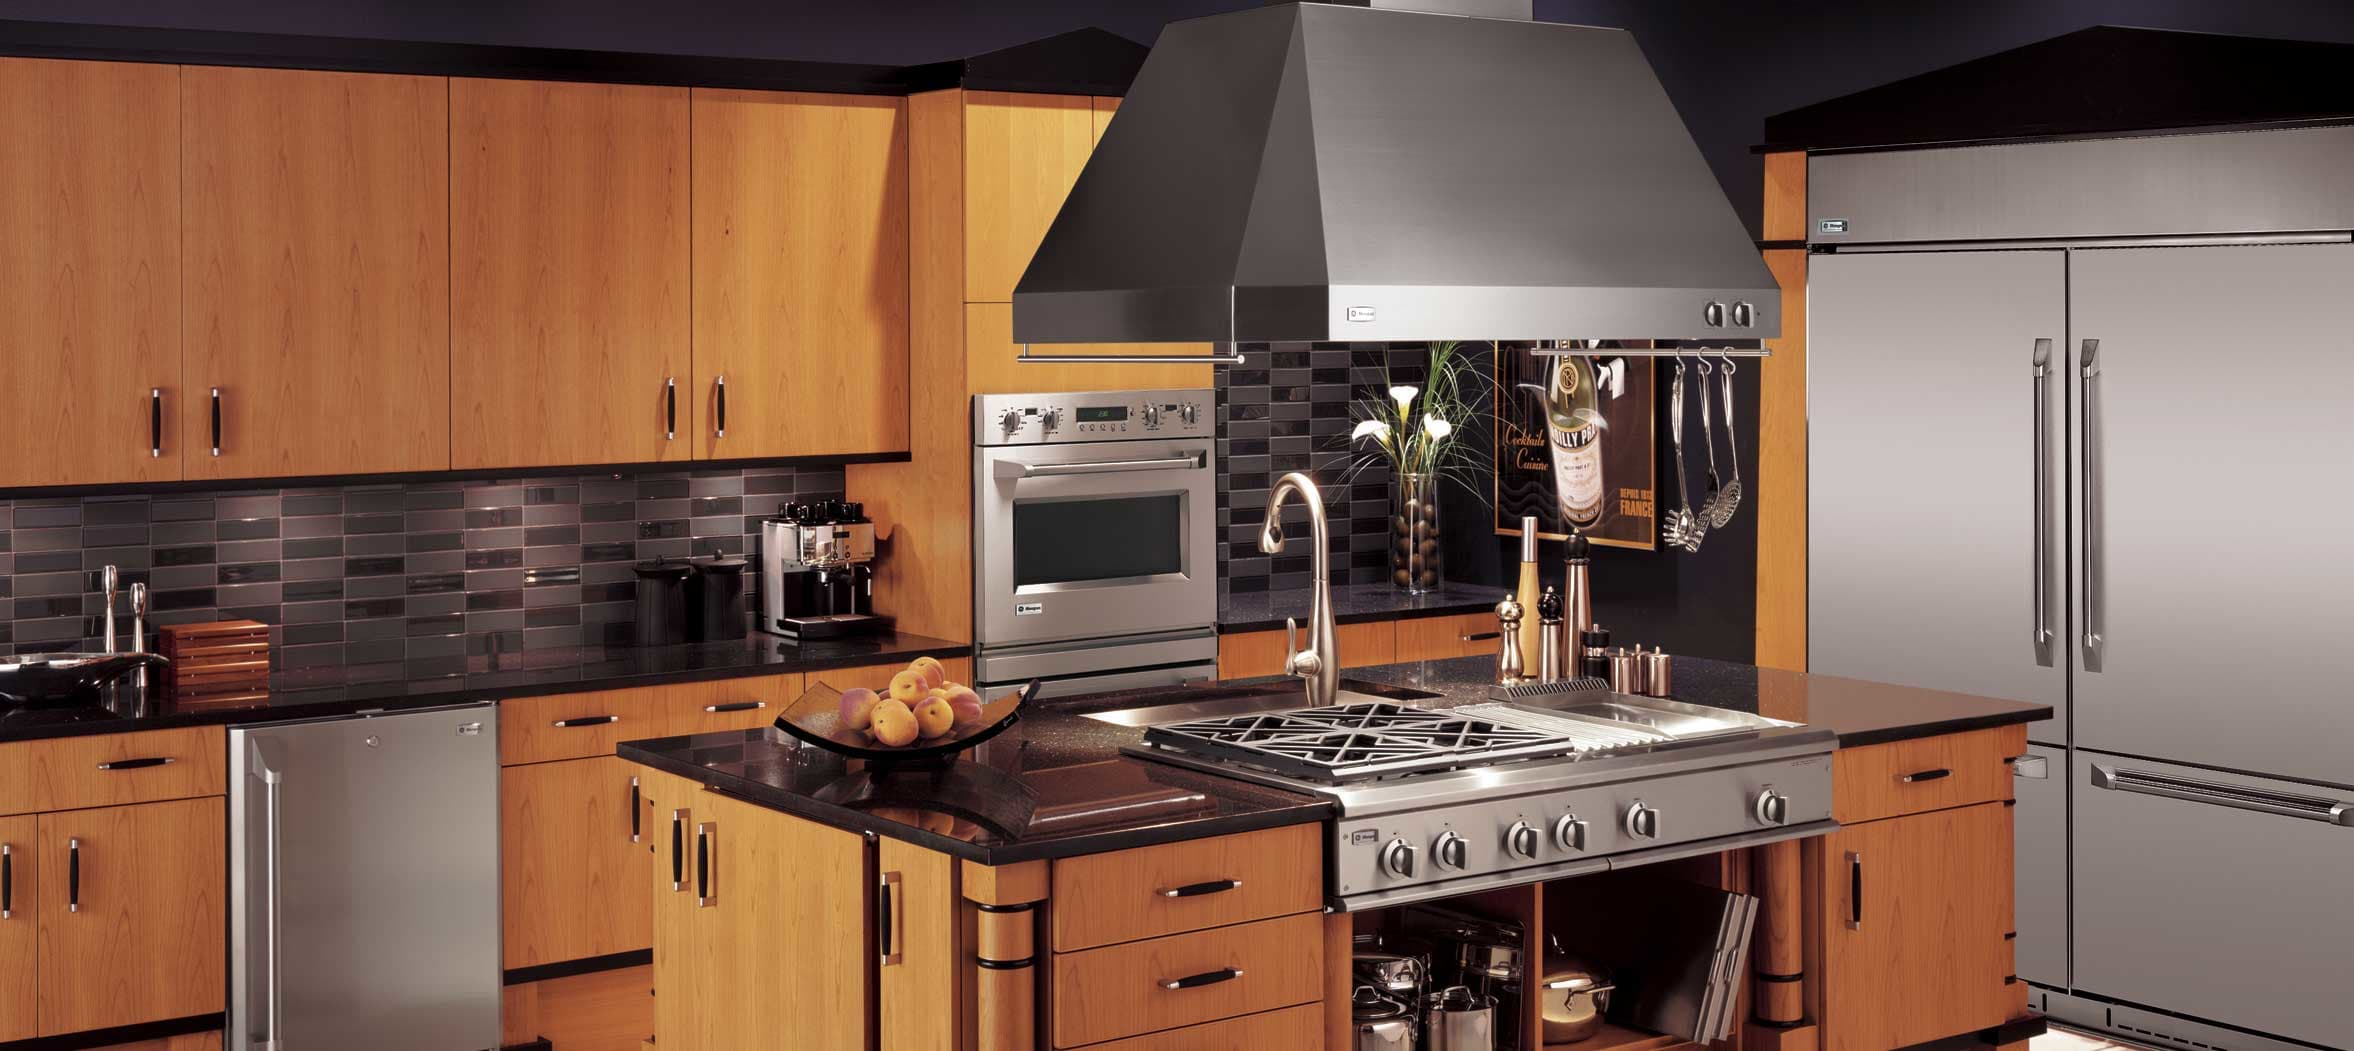 Understated onyx kitchen with a central GE hood.